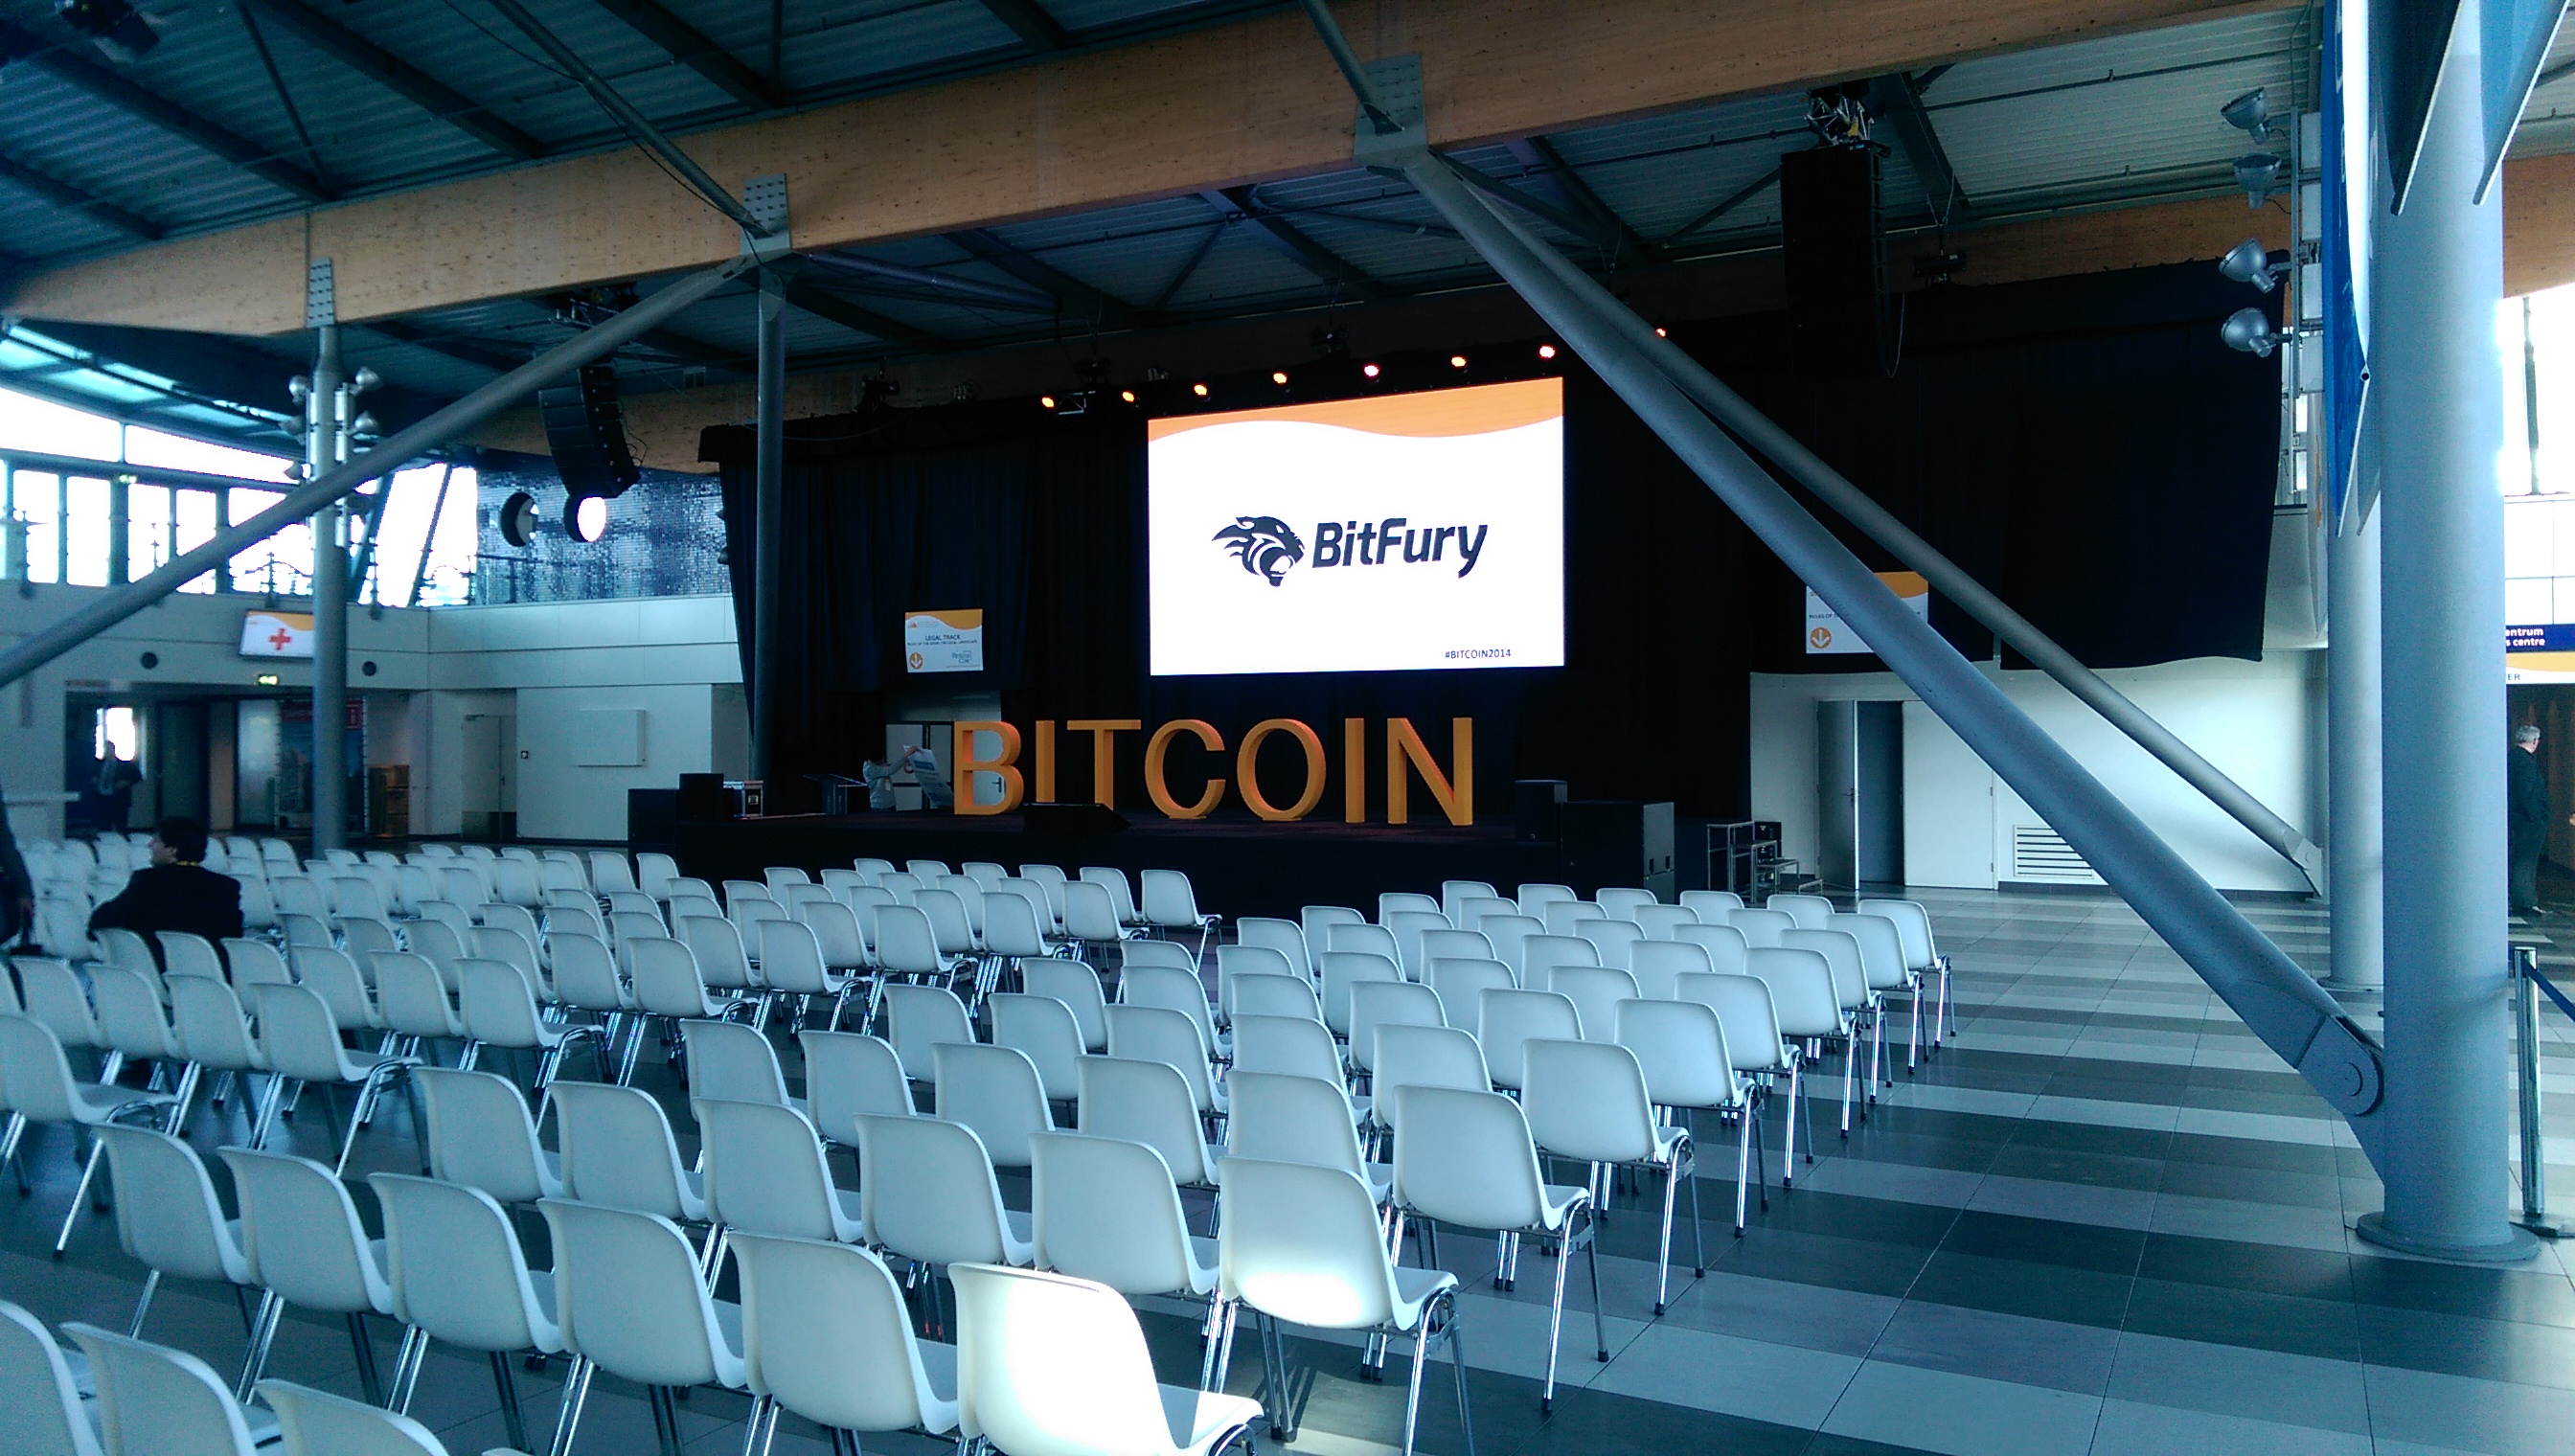 Thoughts on the Bitcoin 2014 Conference